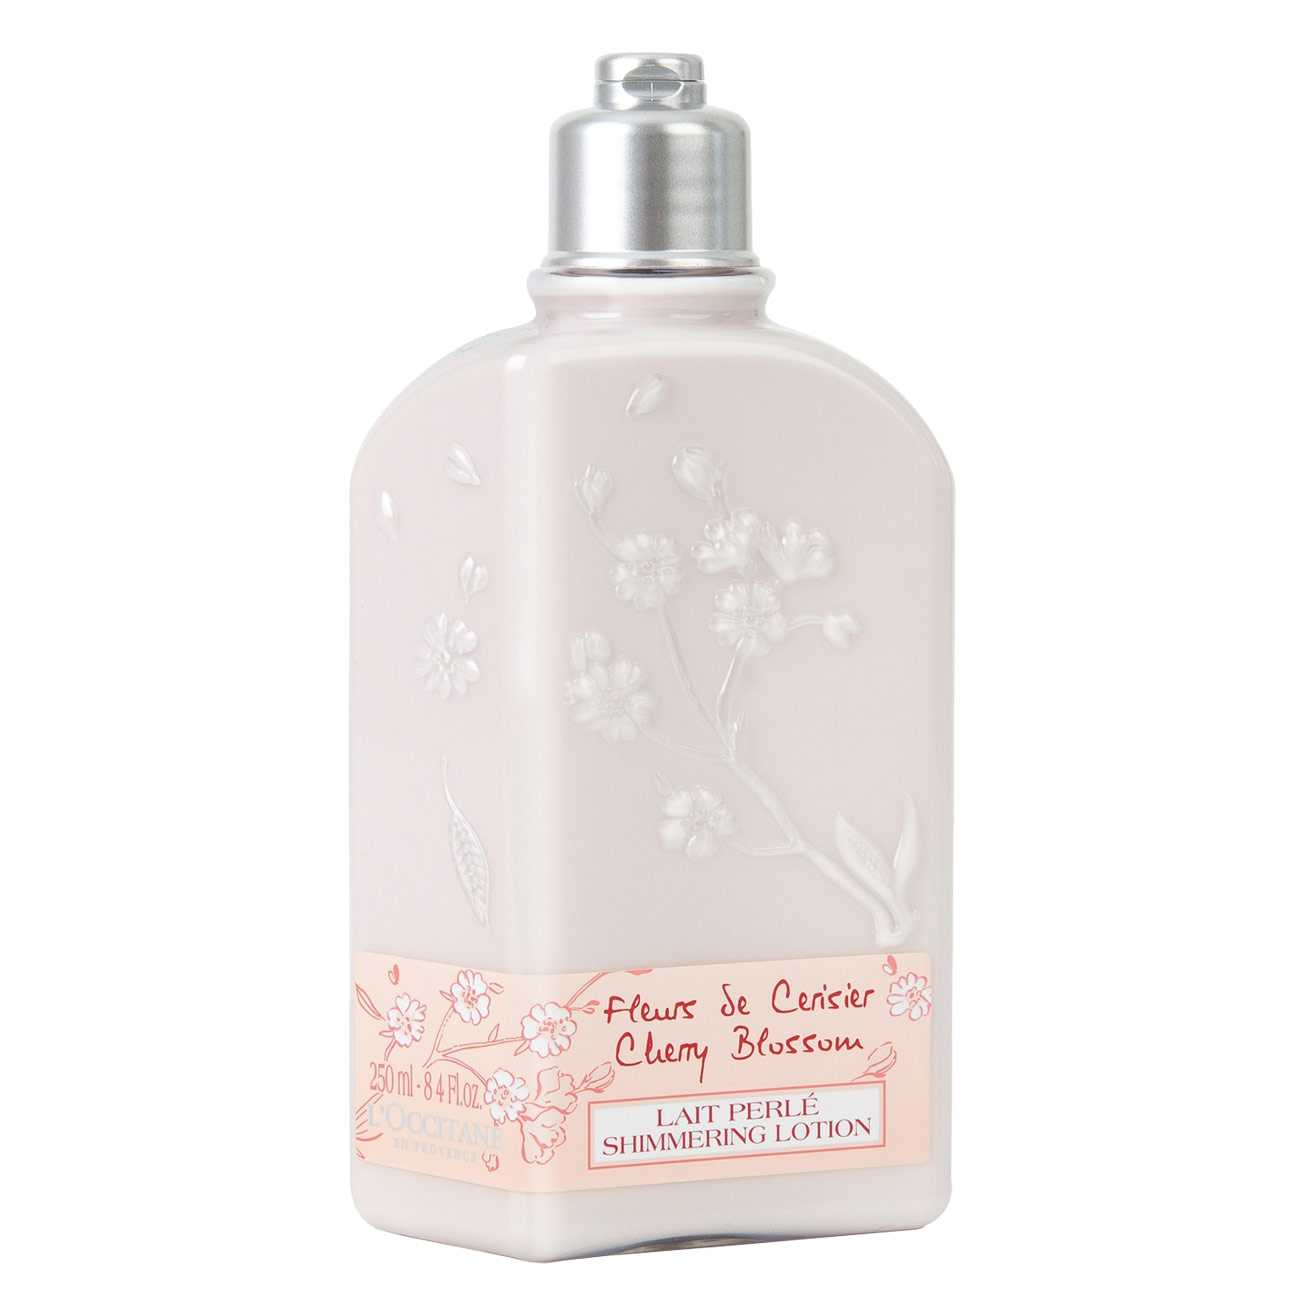 Cherry Blossom Body Lotion 250 Ml